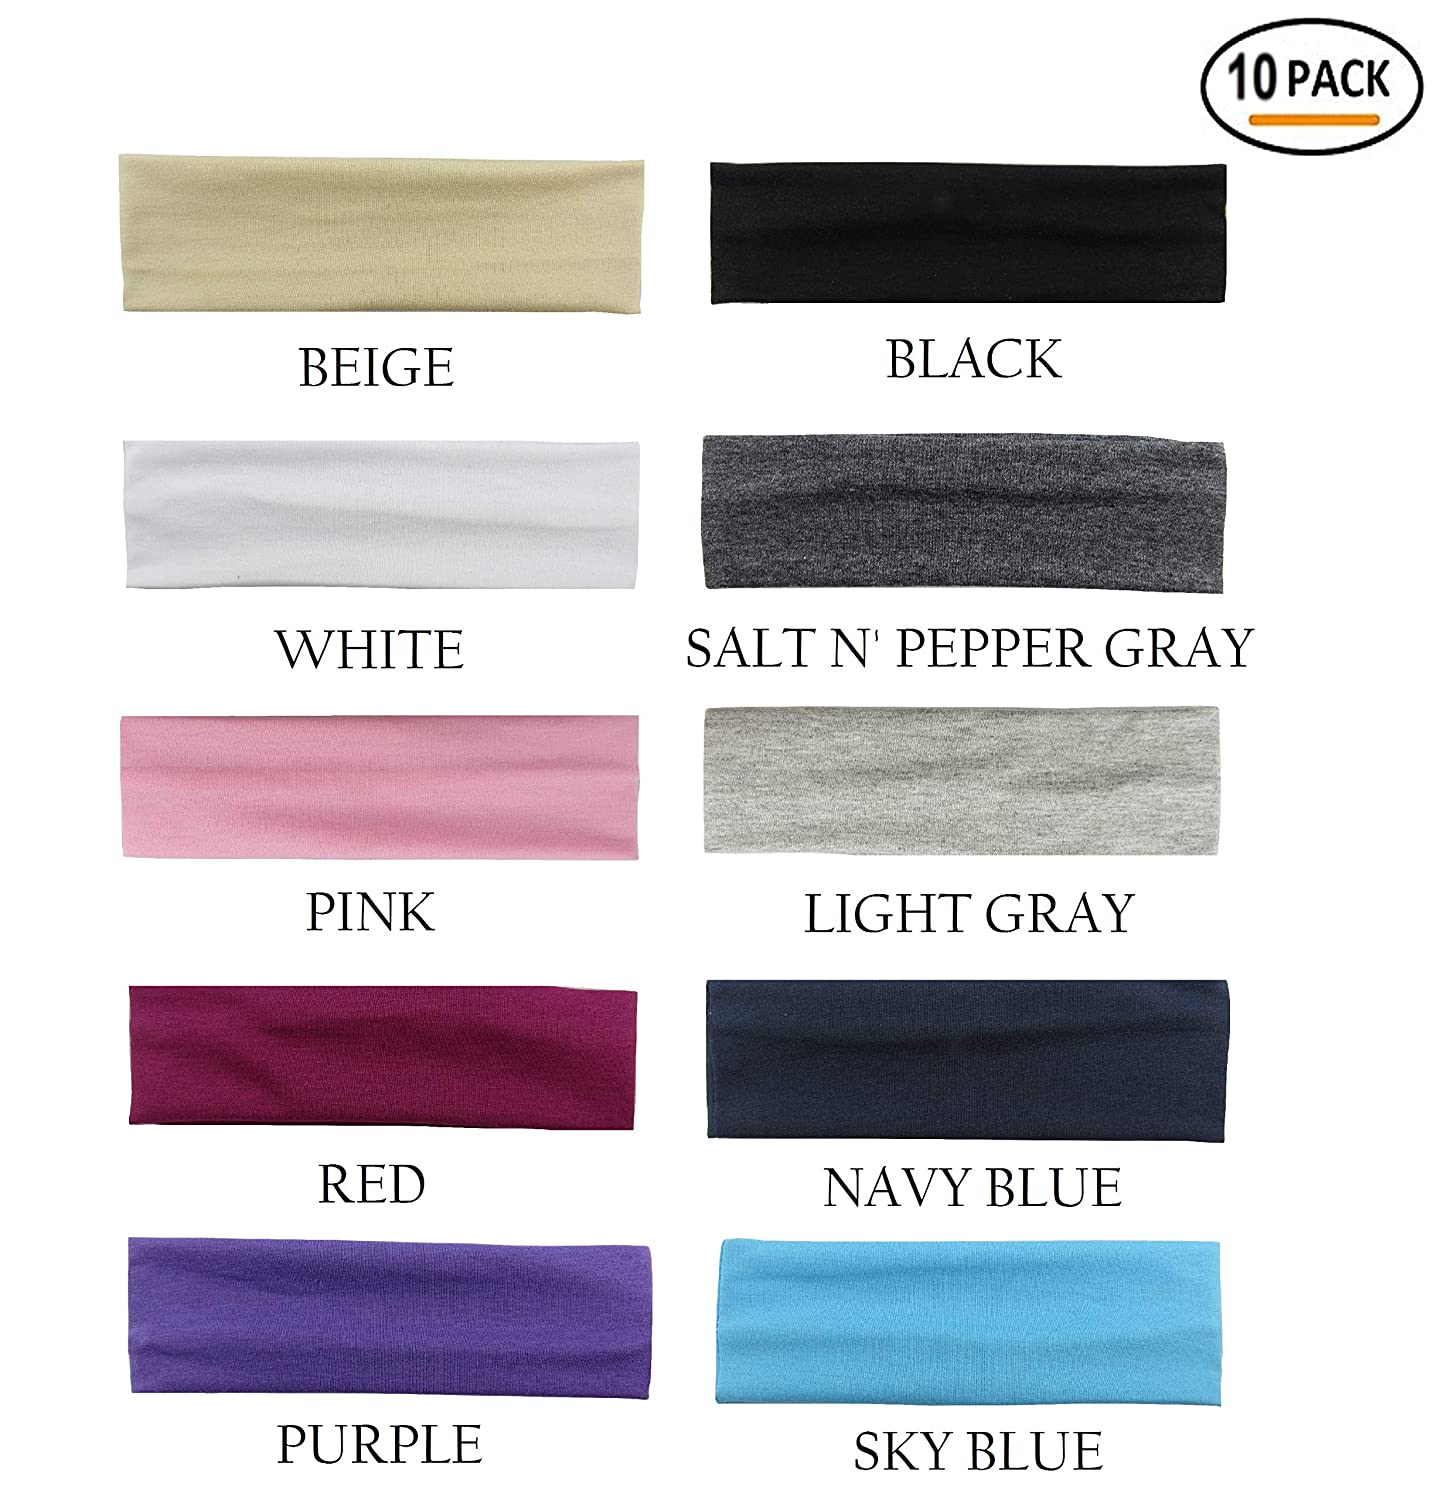 Styla Hair 10 Pack Yoga Headbands - Elastic Cotton Multi-Function Sports Head Bands Stretchy Wraps...